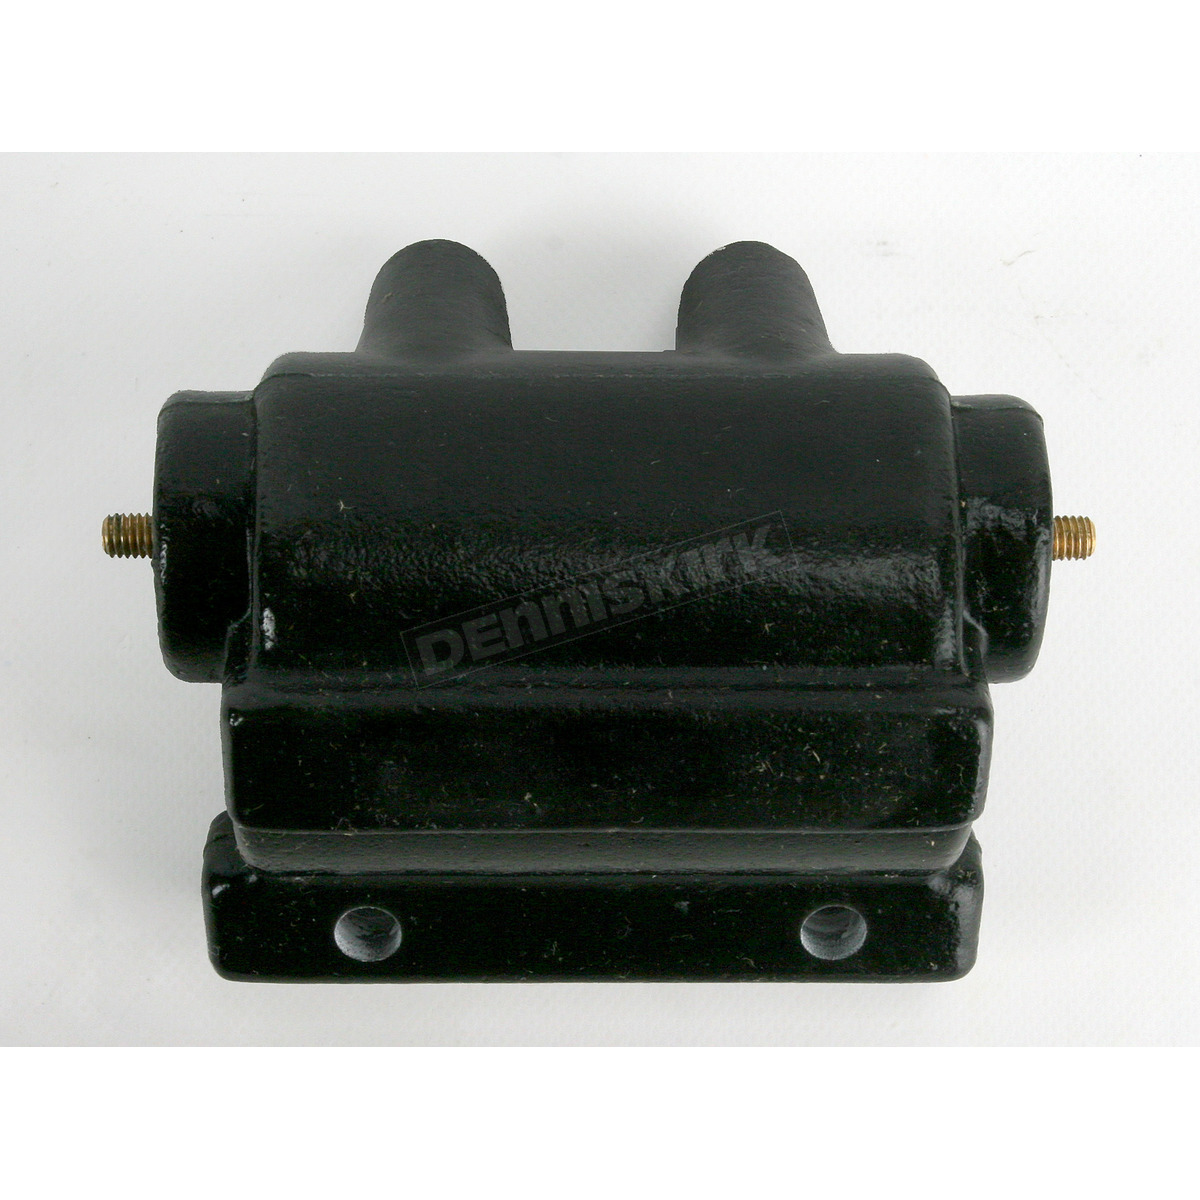 HIGH POWER 30,000 PLUS VOLT COIL HARLEY 1980 1984 ELECTRONIC IGNITION 4 OHM